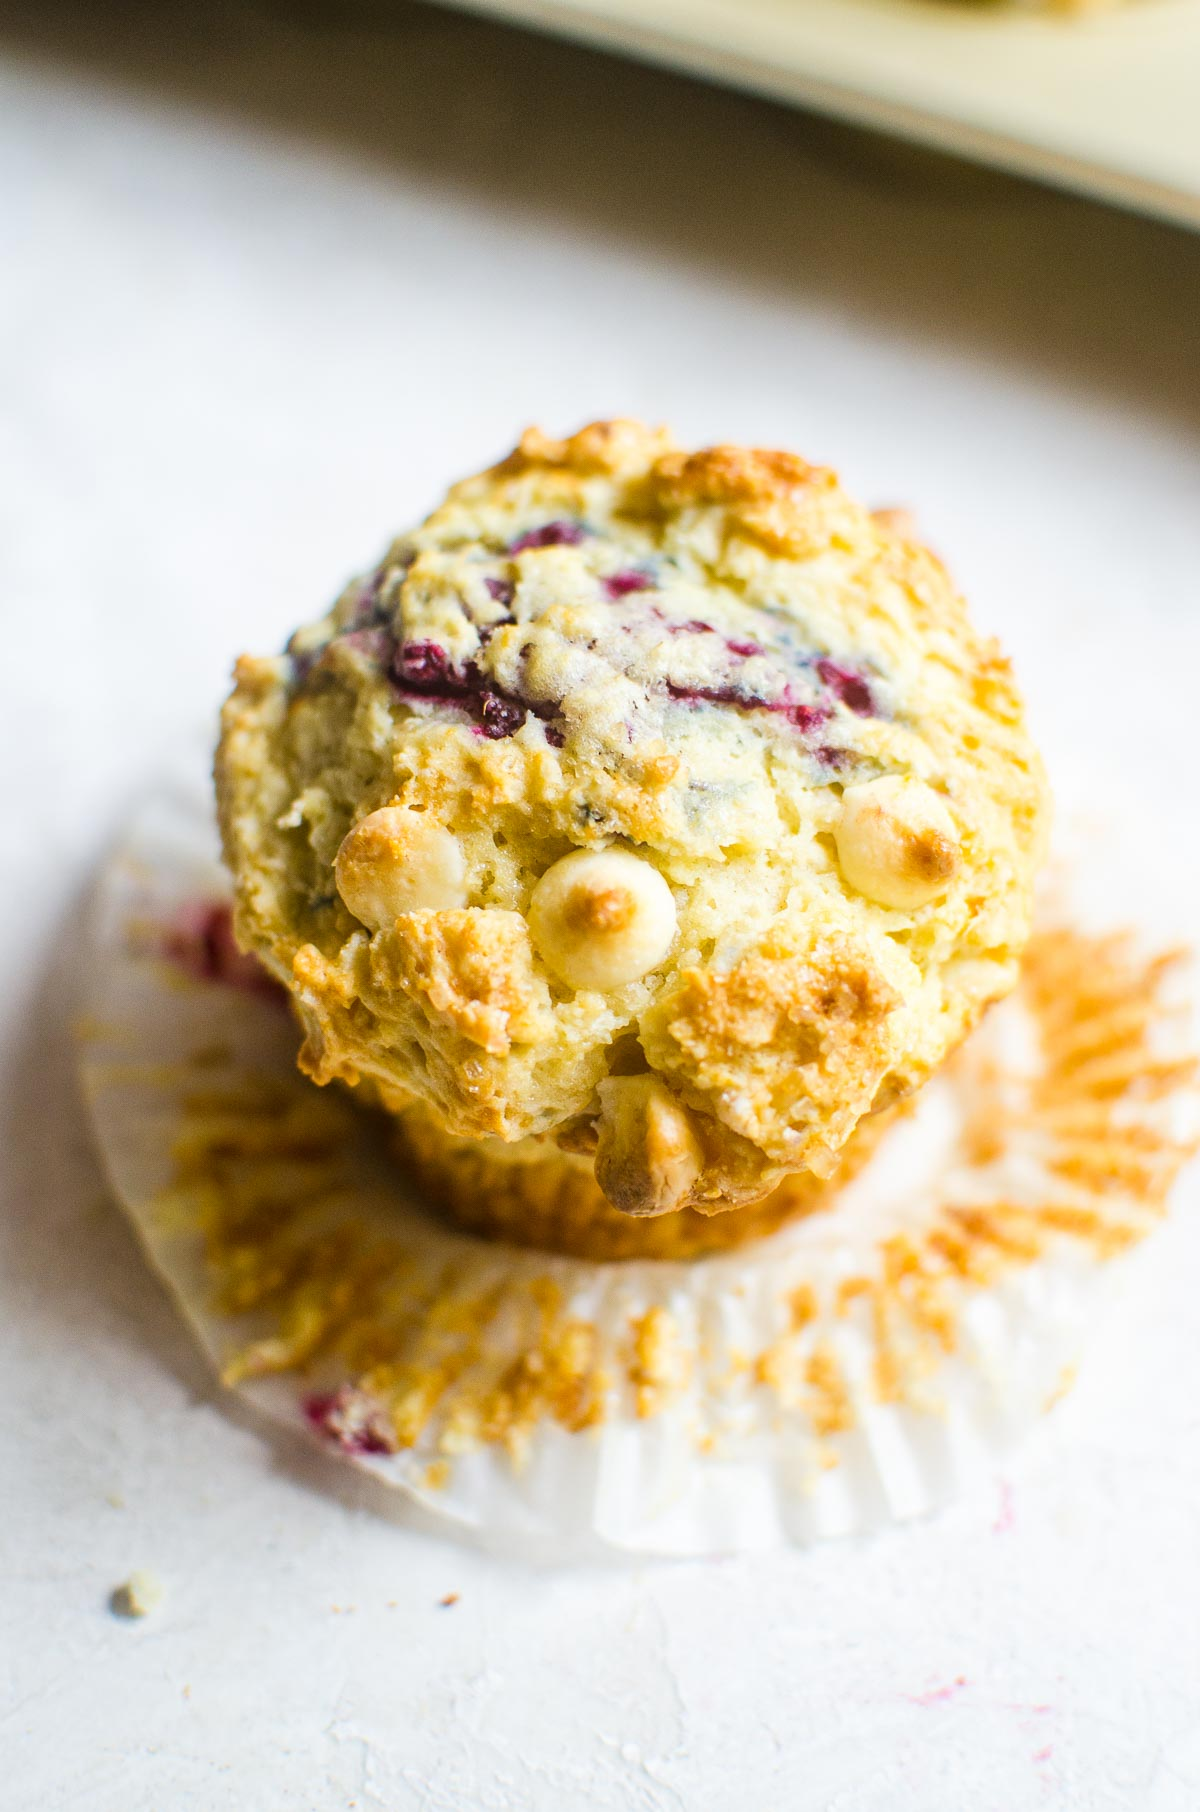 Overhead view of raspberry muffin showing toasted white chocolate.